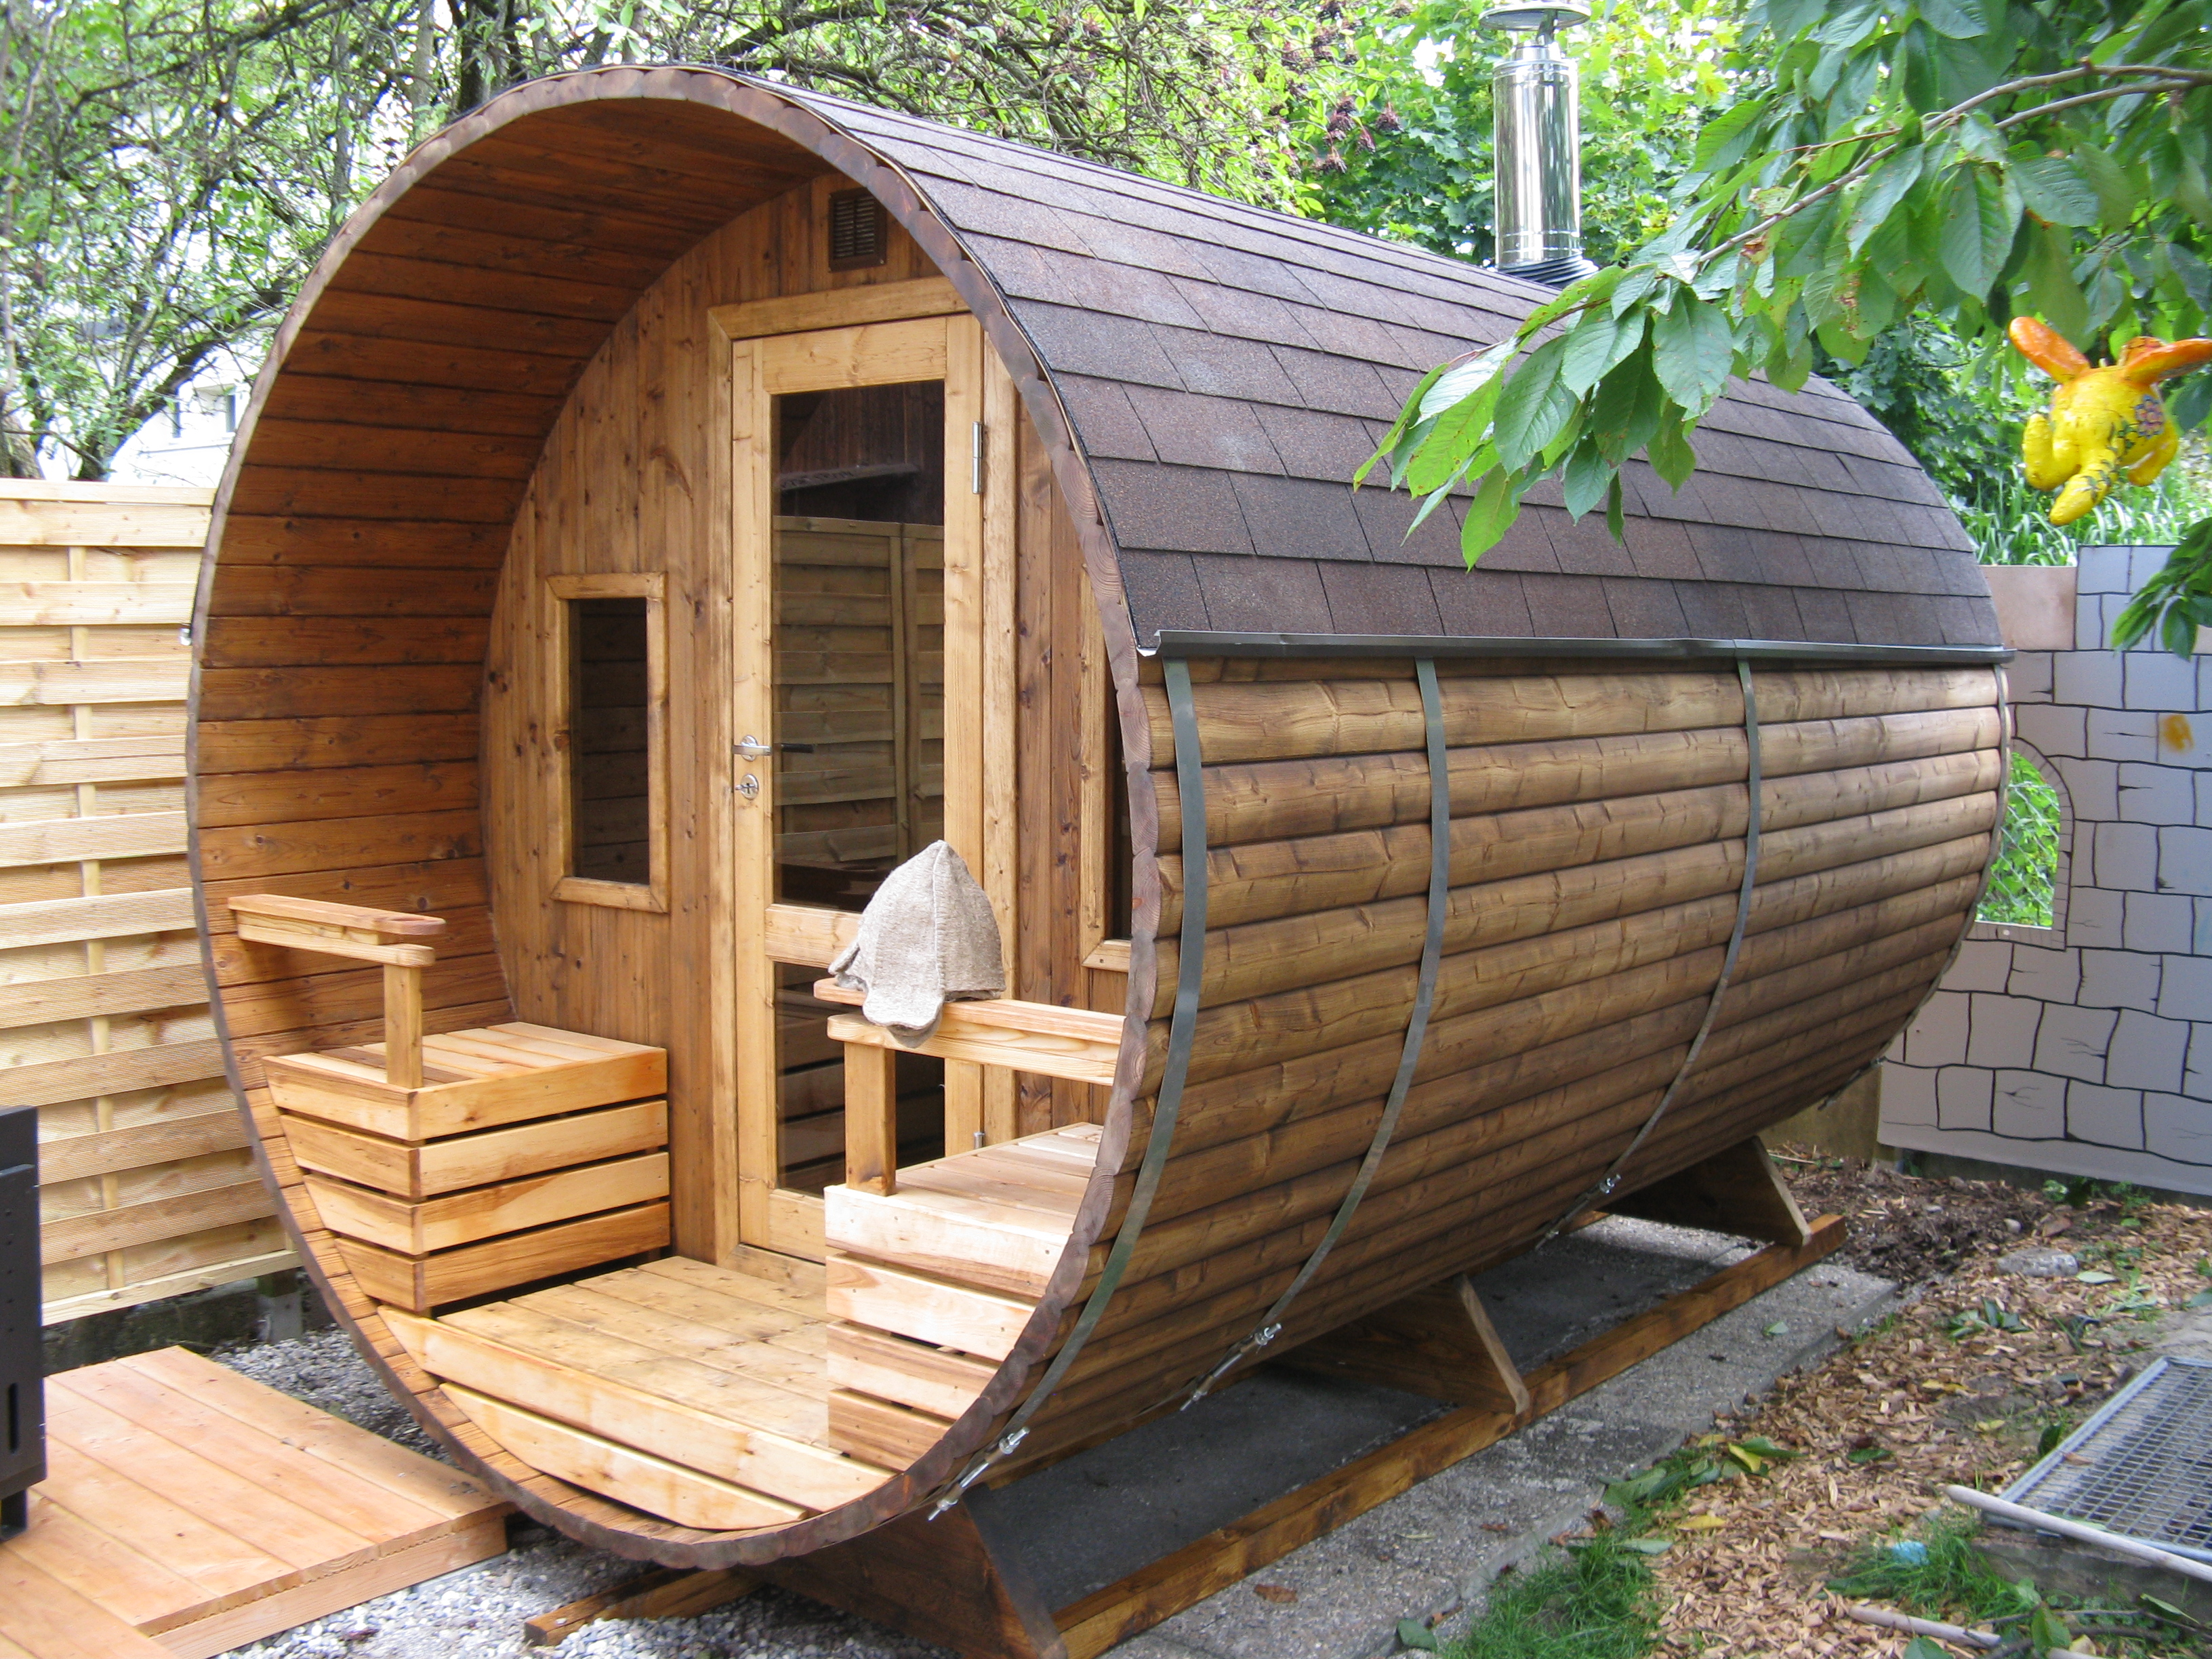 Barrel Sauna Cozyplaces